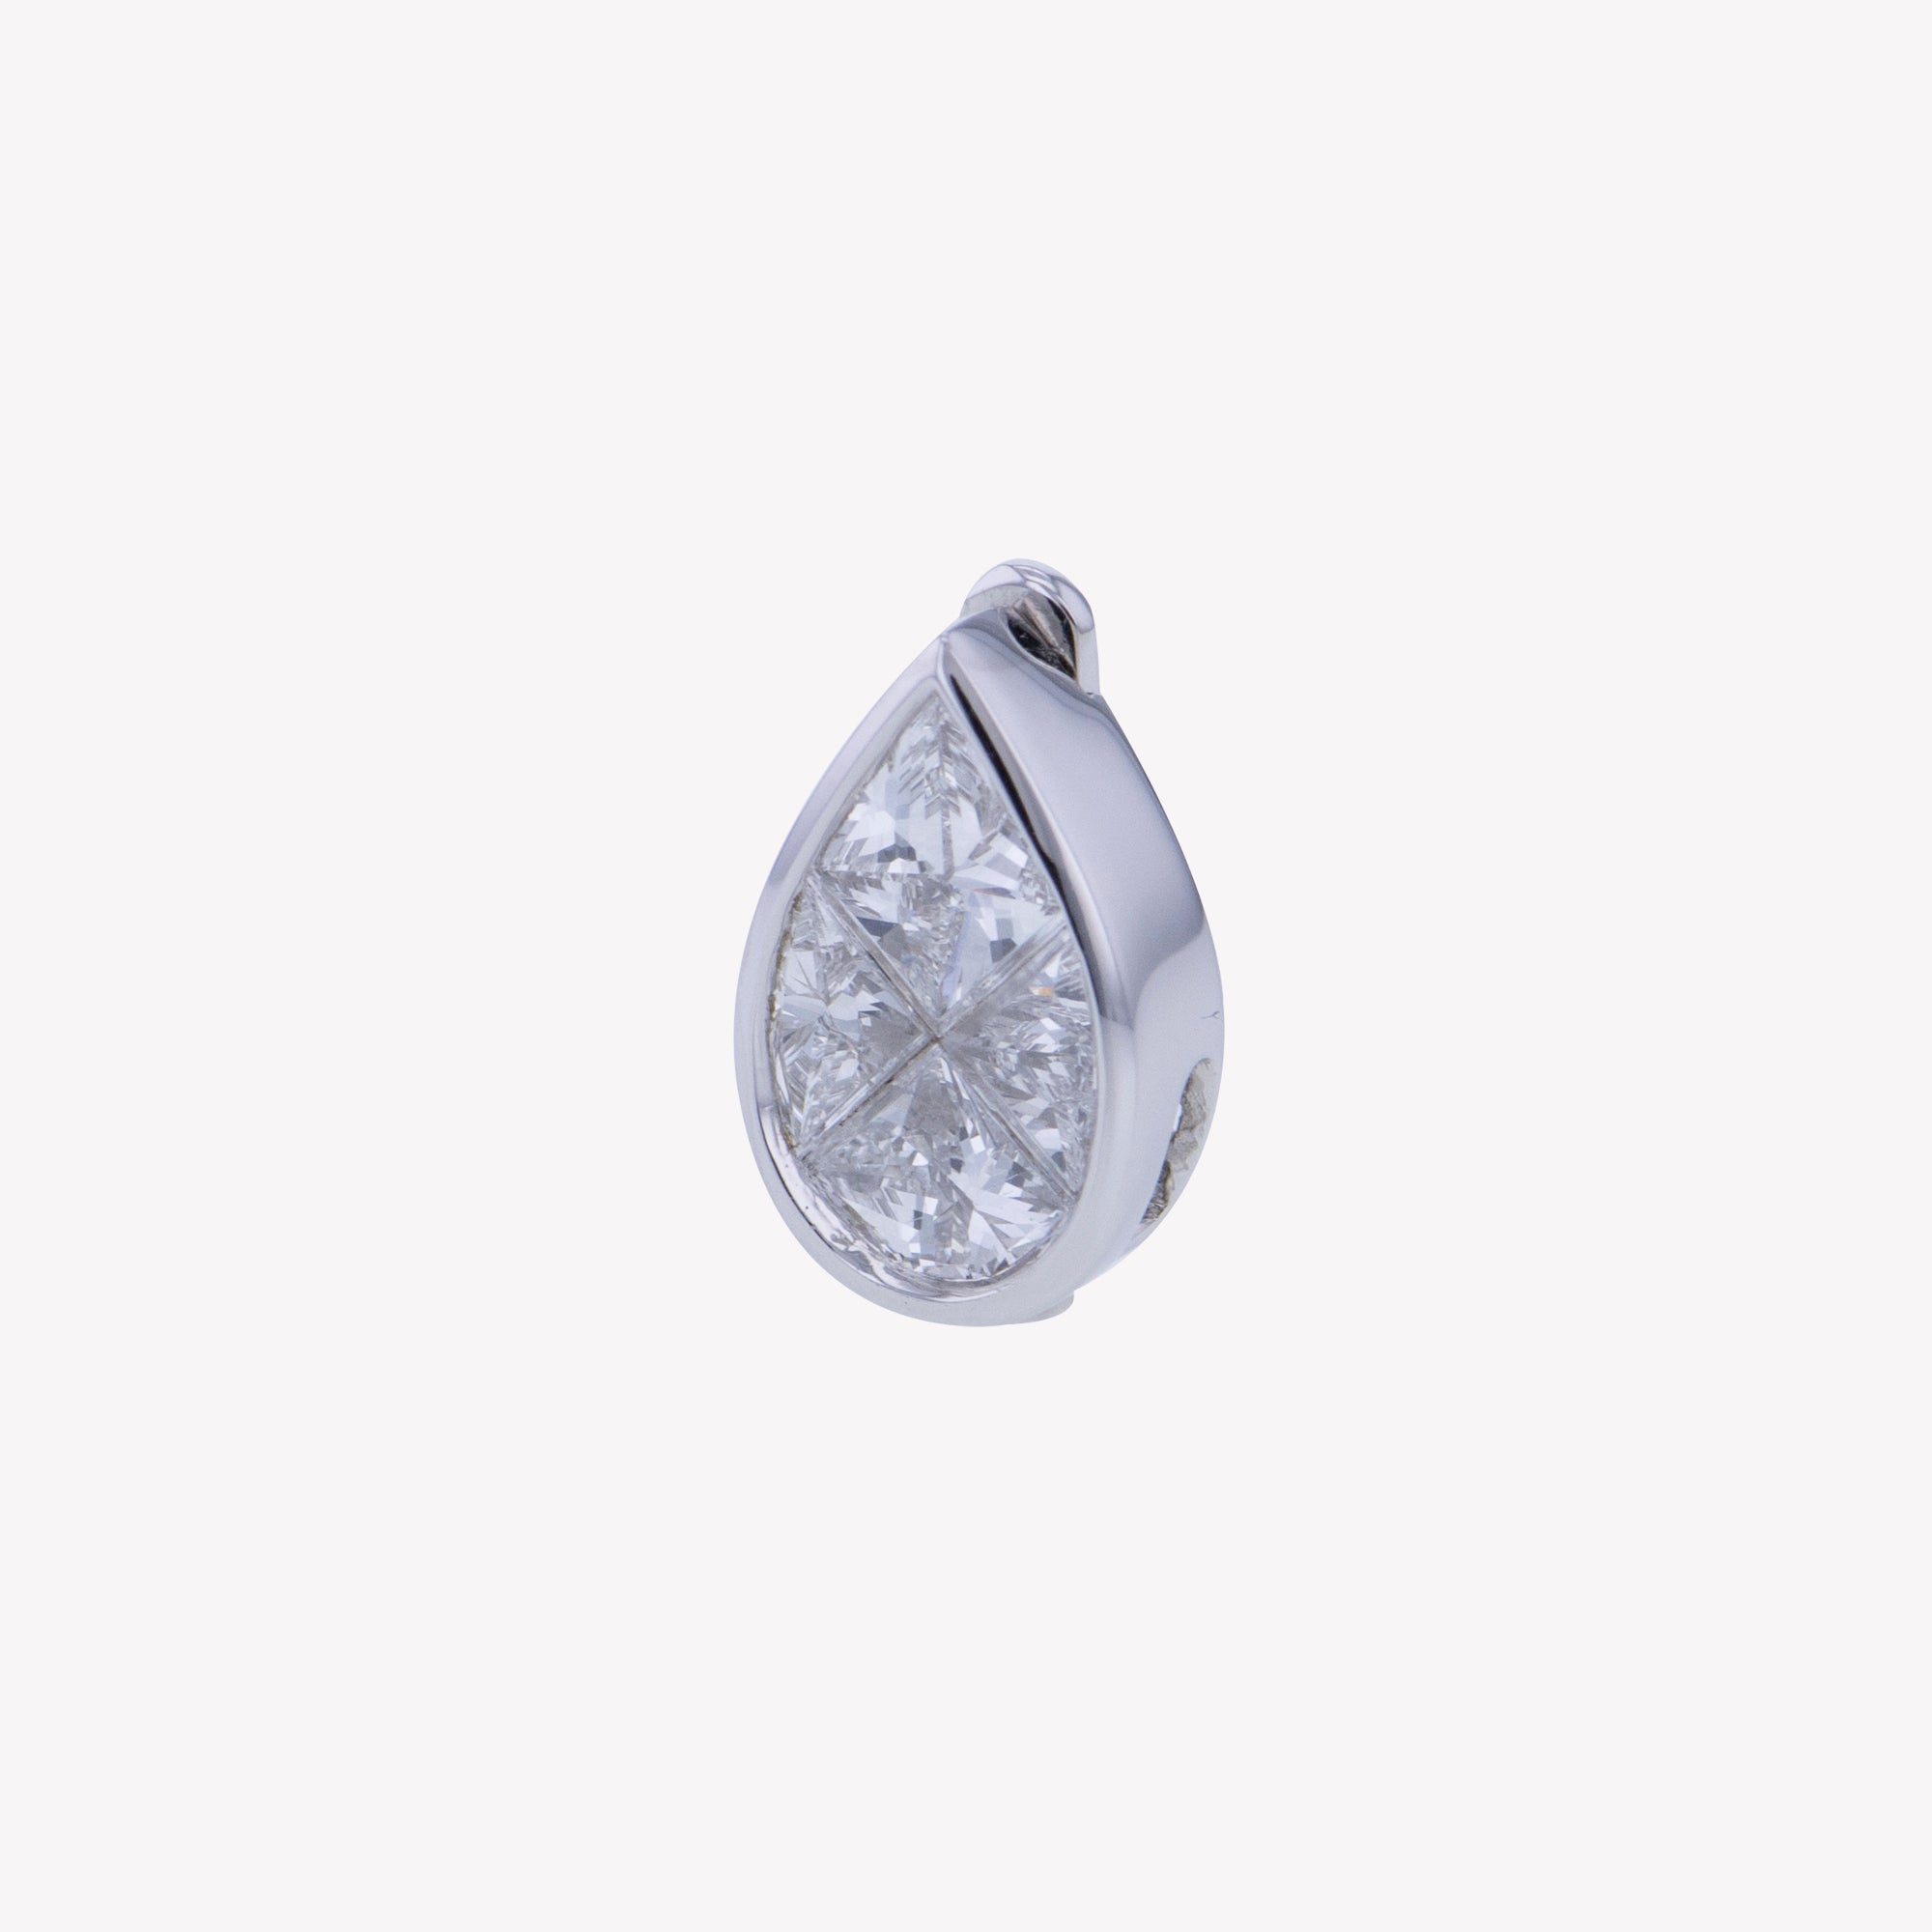 Detachable White Gold Pear Head with Octa Band